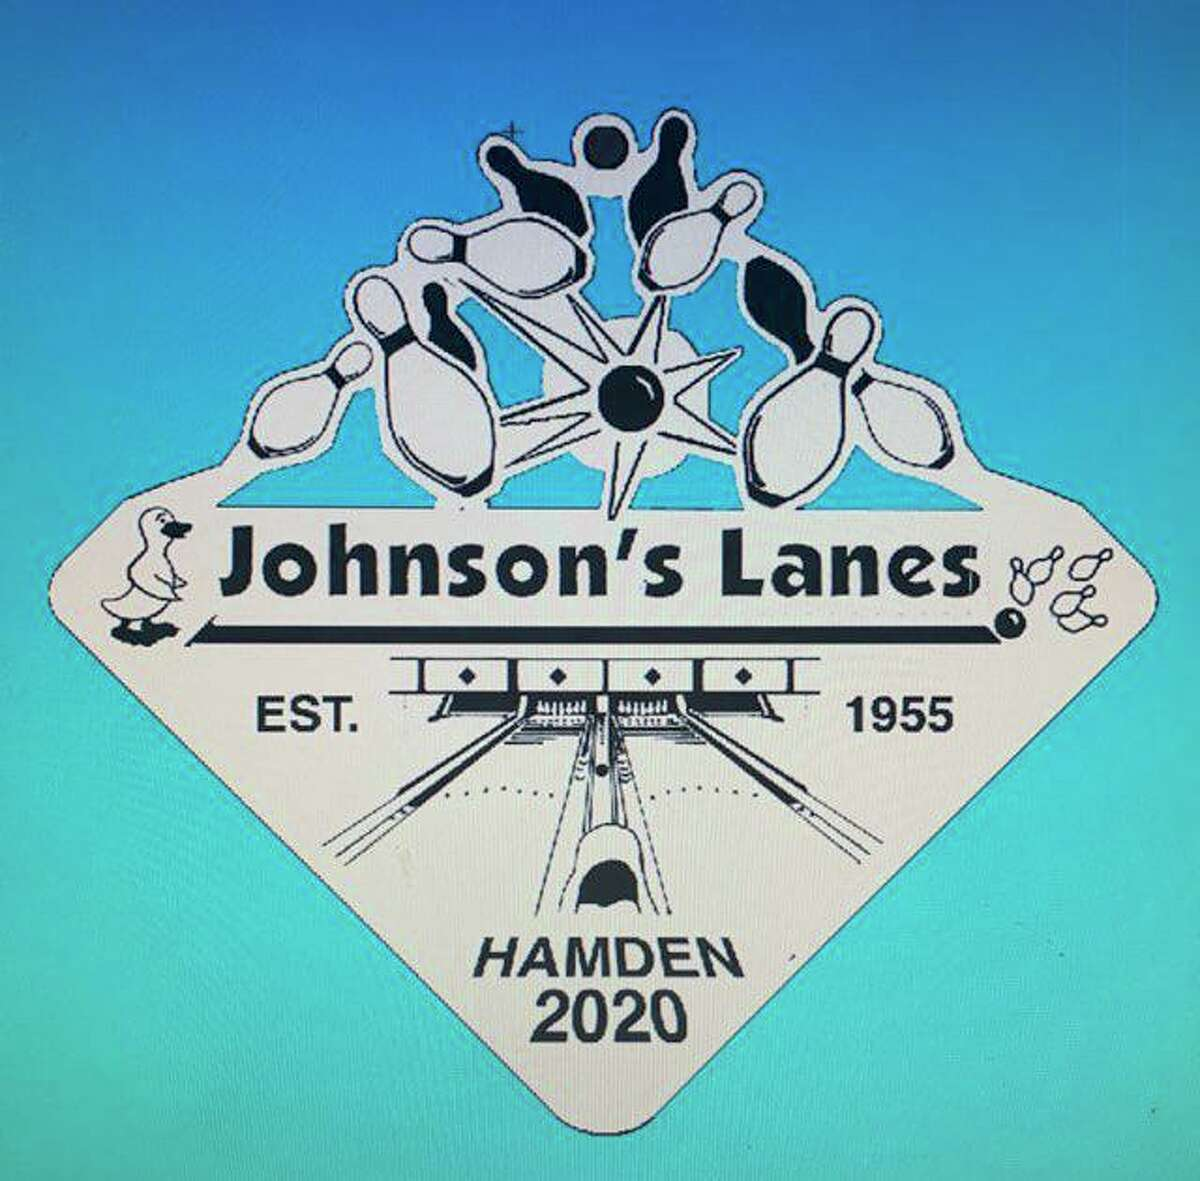 CLASSIC HAMDEN: For the last 29 years, the Hamden Recreation Department has been celebrating the Hamden community with holiday ornaments of famous settings, most notably by Karl Wildman. This year's ornament features Hamden's own Johnson's Duckpin Bowling, one of the last original anchor businesses in the Hamden Plaza since it opened in 1955. You can order an ornament at Hamden.com.